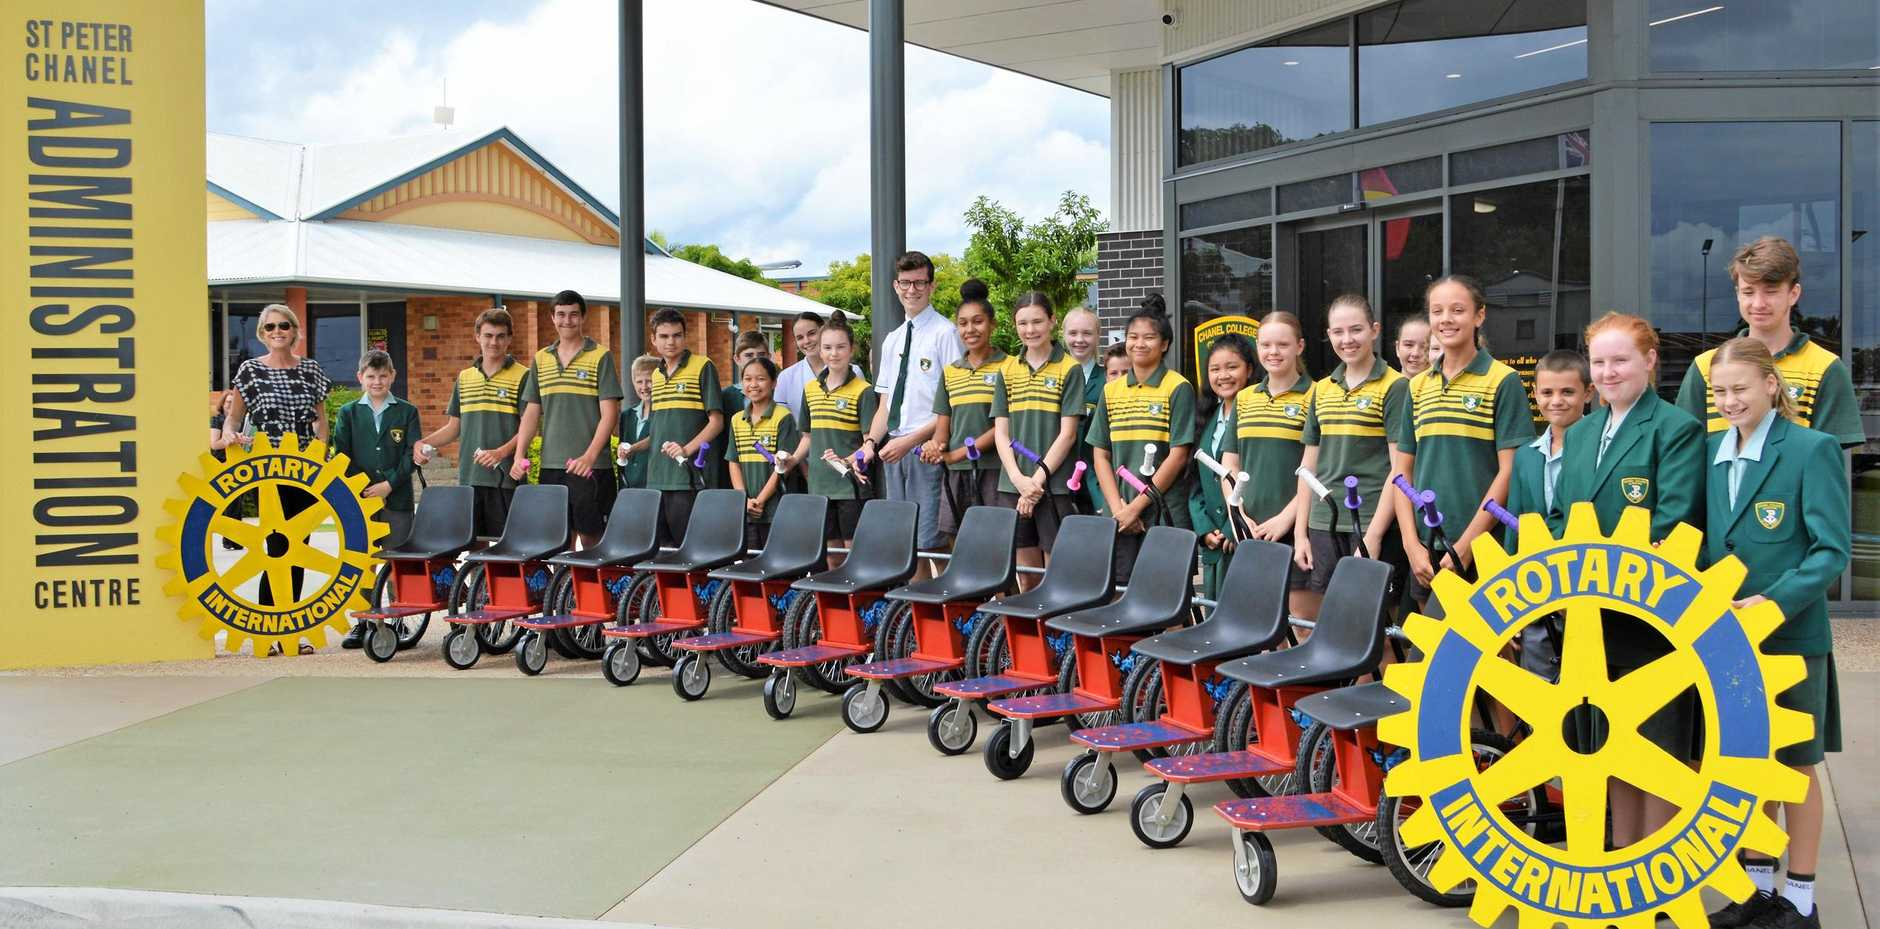 HELPING HAND: Chanel College students proudly display the wheelchairs they painted